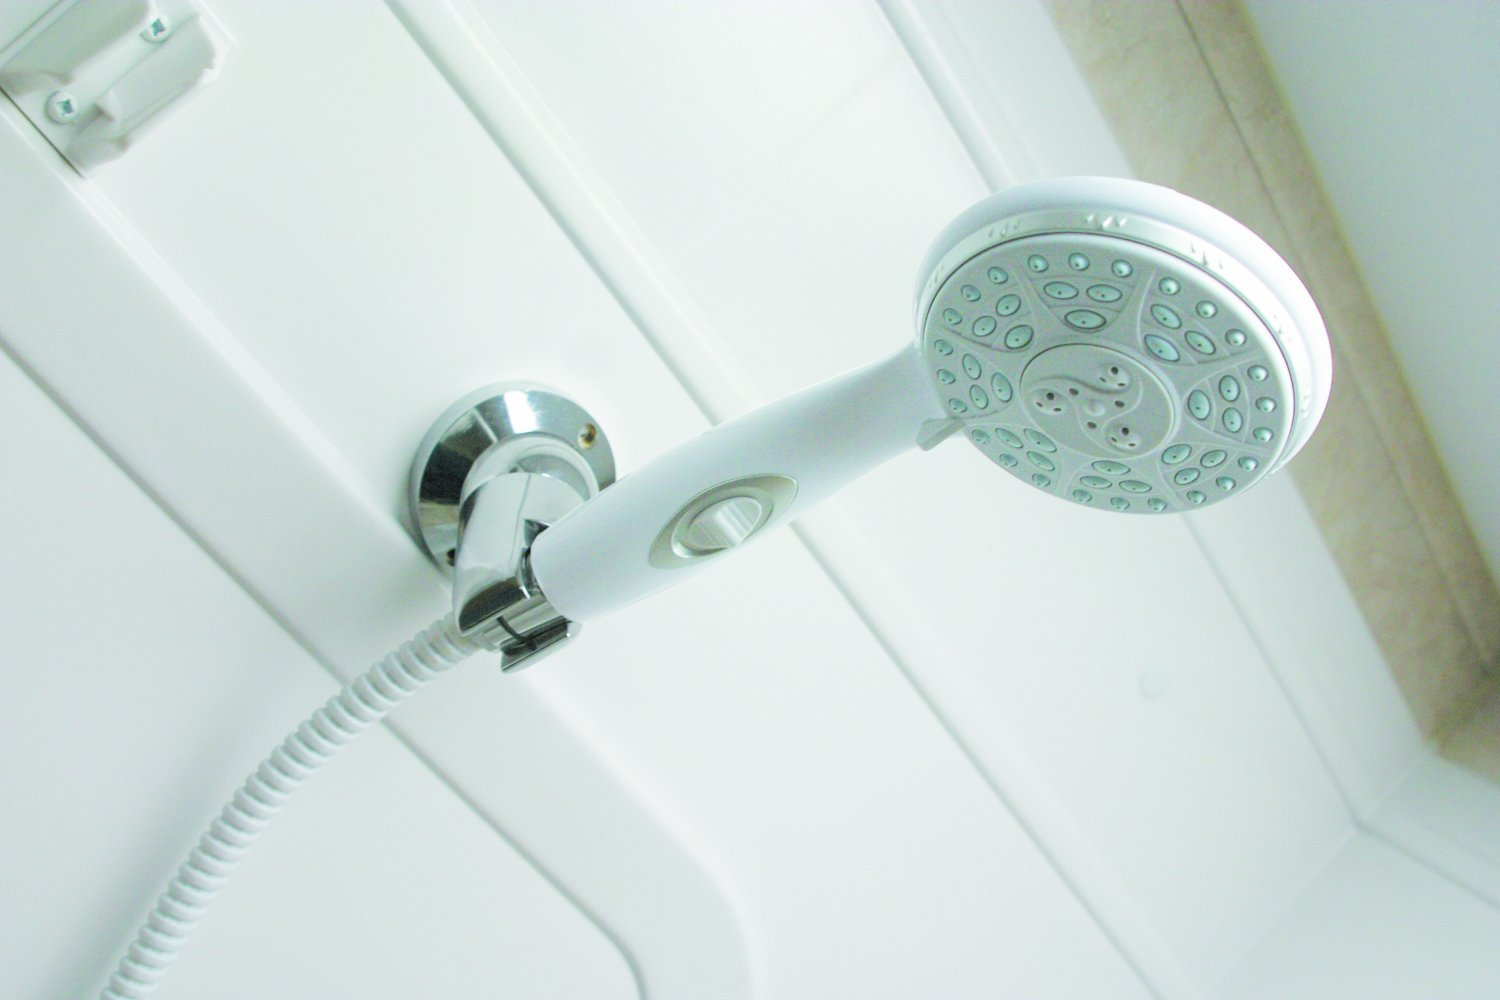 Buy a Showerhead Which Will Keep Chlorine Out From The Bathroom